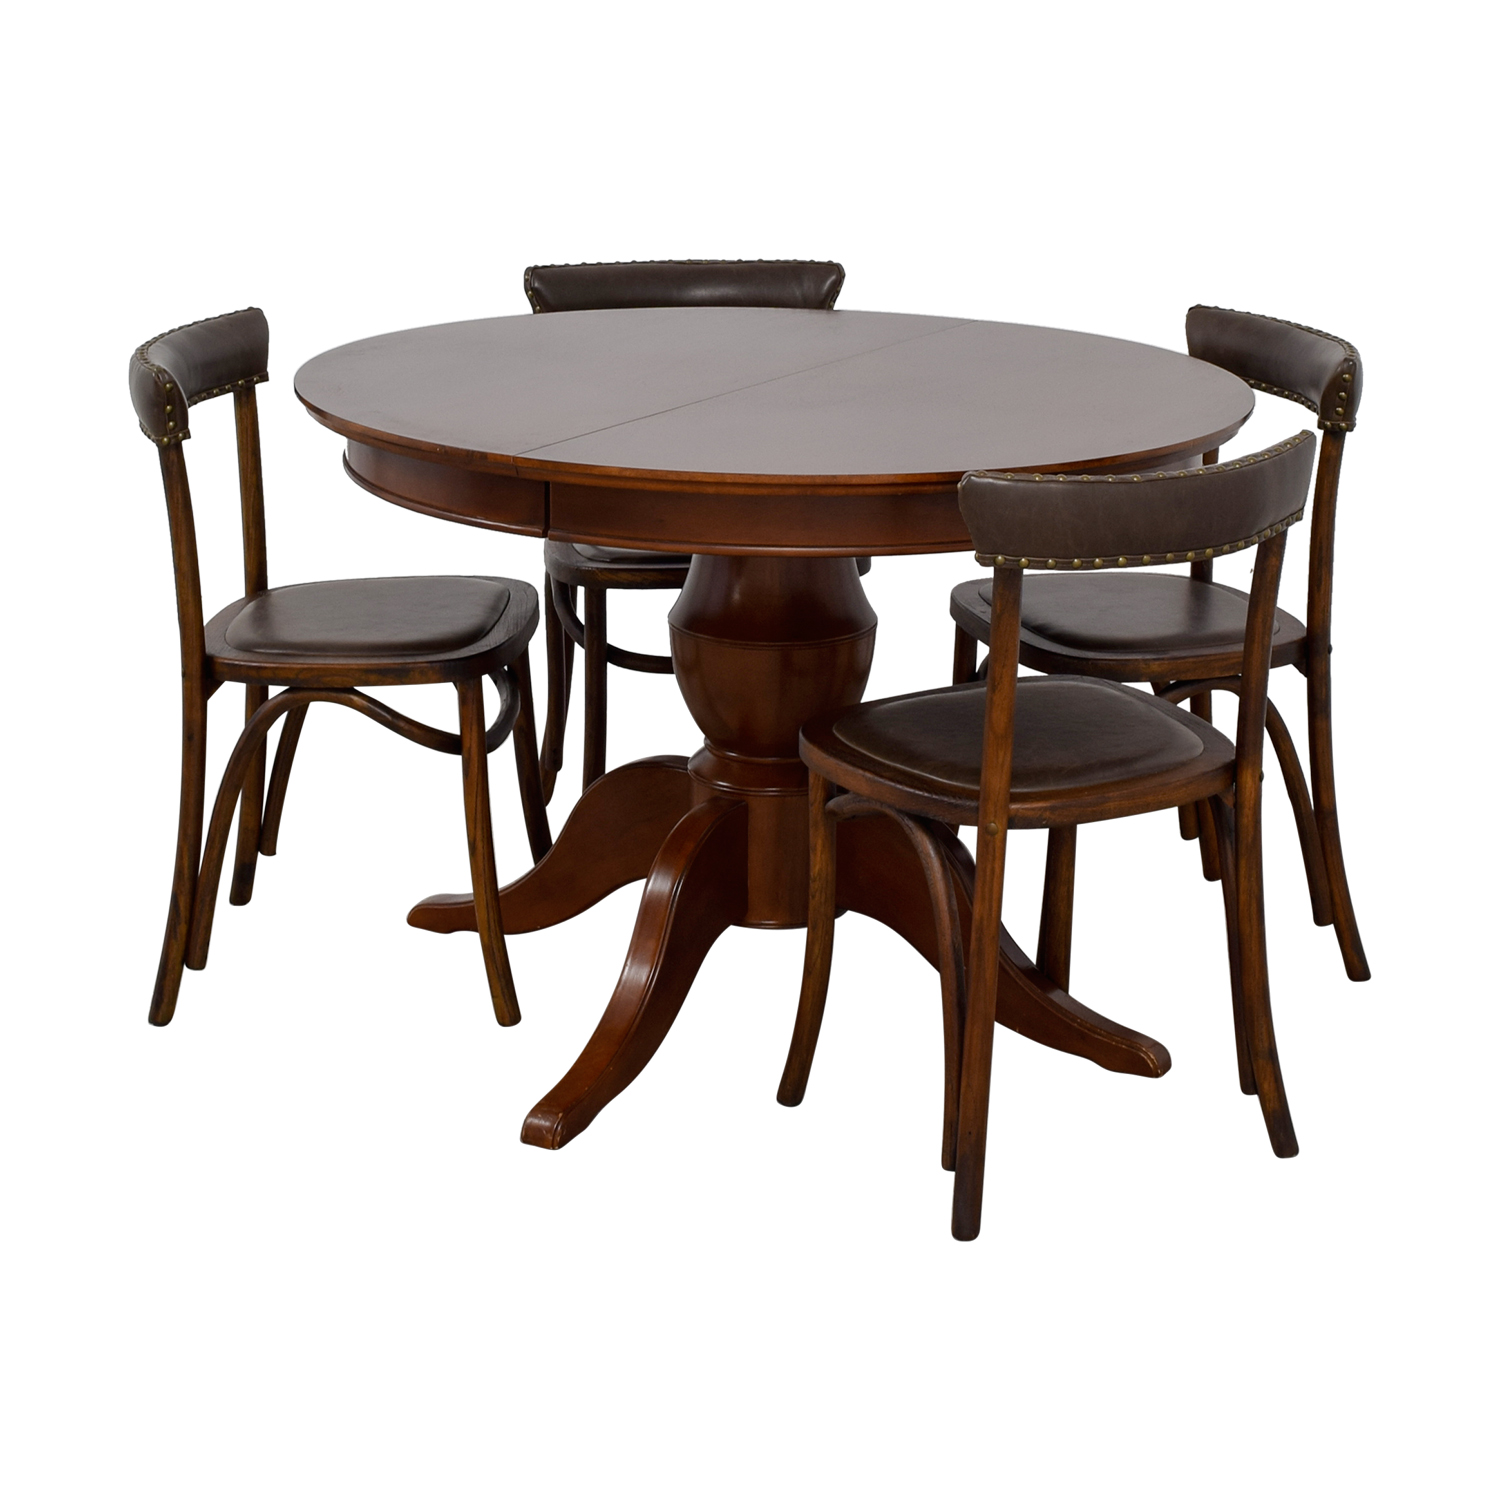 ... Buy Pottery Barn Round Spindle Table With Extension Leaf Dining Set  Pottery Barn Dining Sets ...